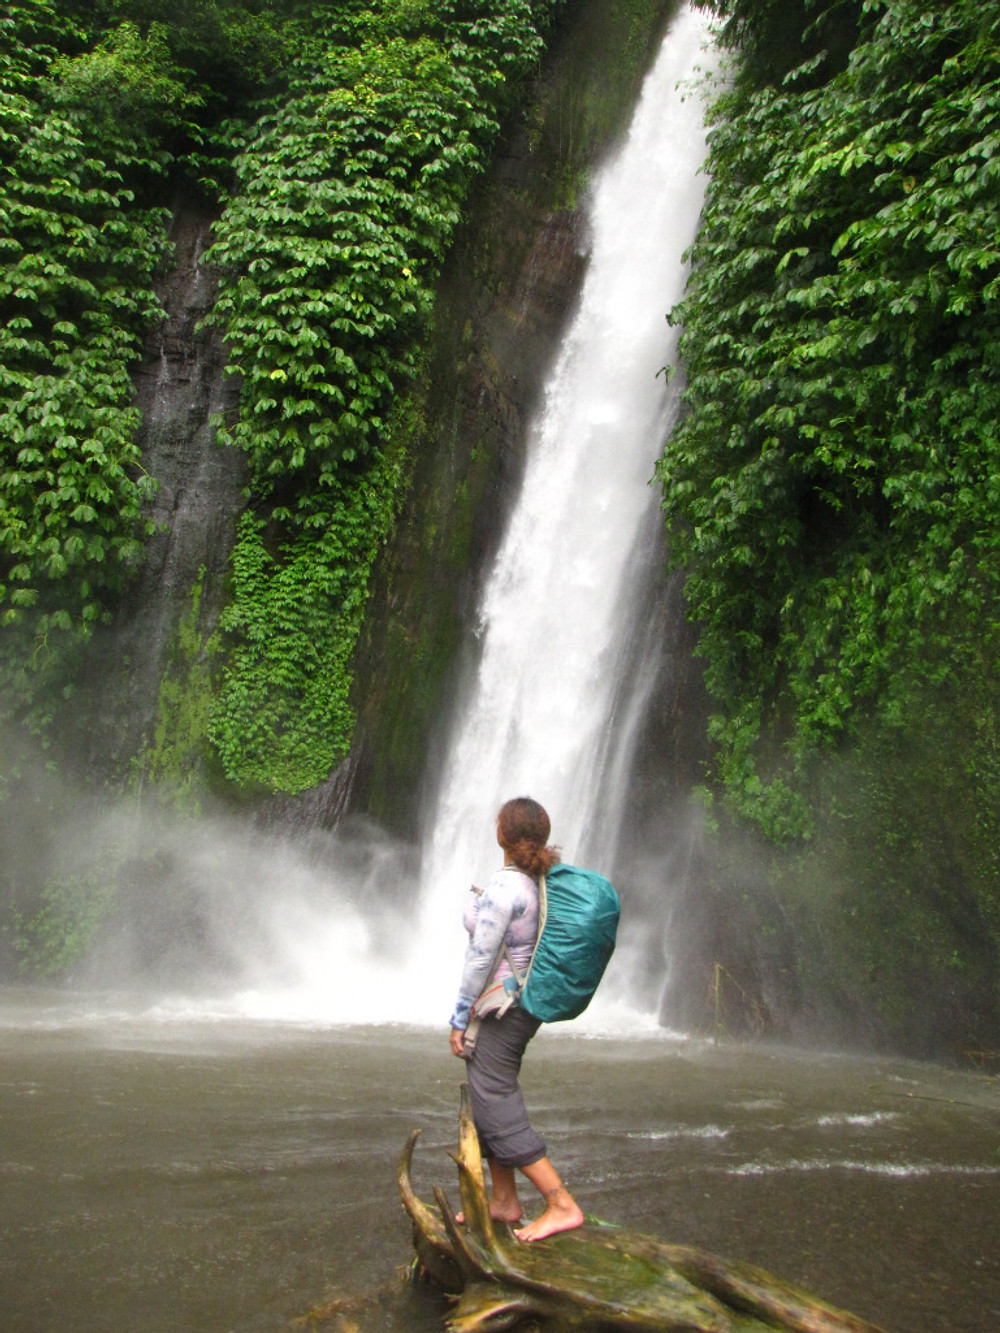 Take a break from writing and go get a coffee - or go for a short hike to a local waterfall. I choose the latter!!